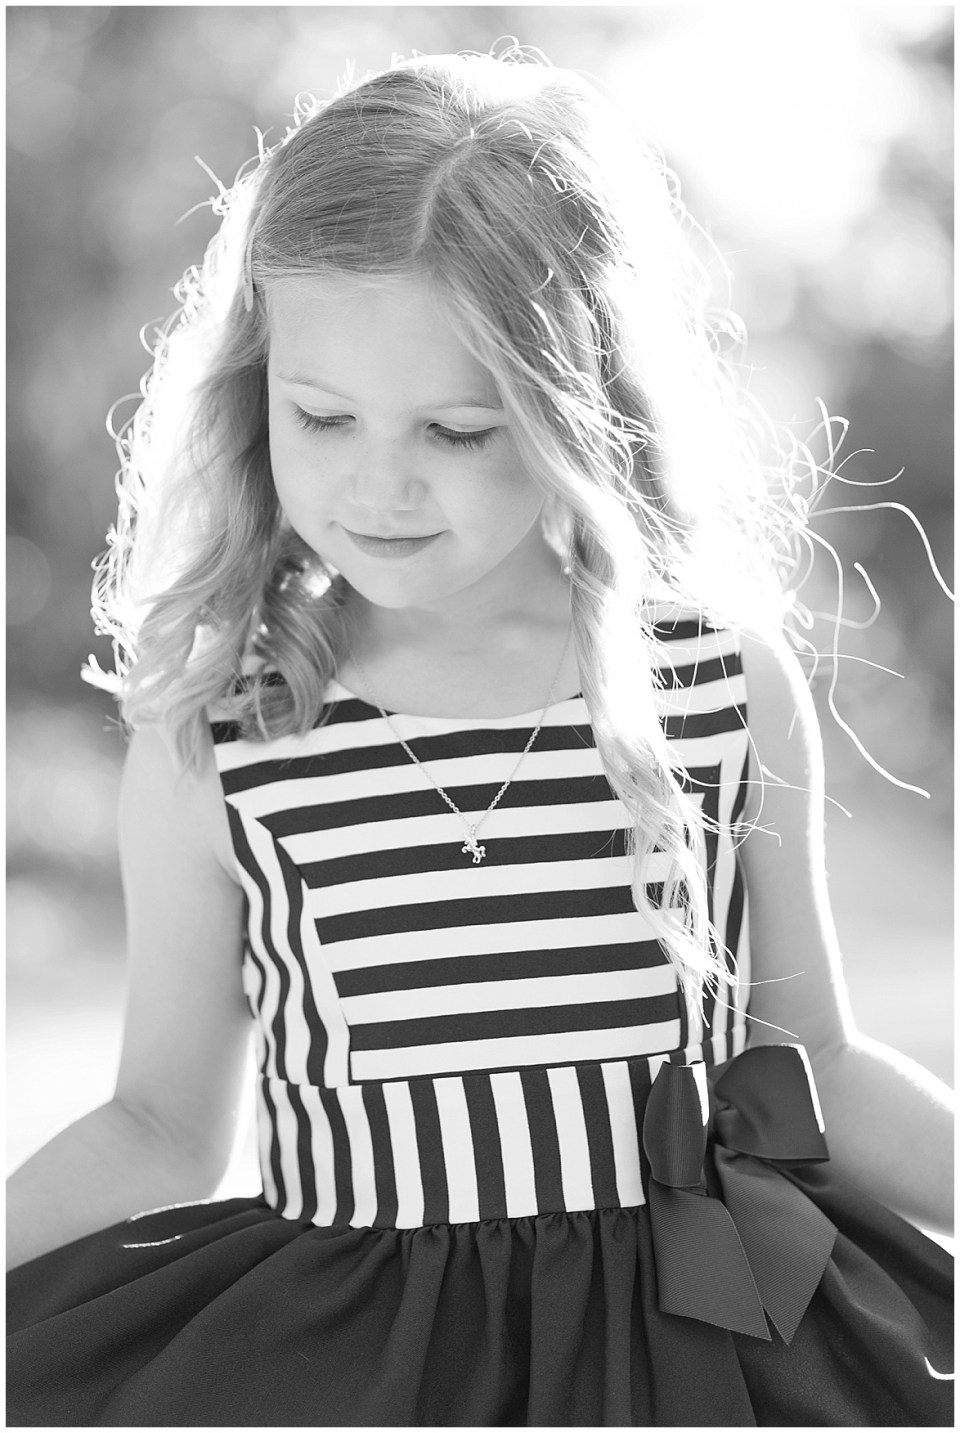 Kingwood photographer's annual letter to daughter, Peanut, on her 6th birthday